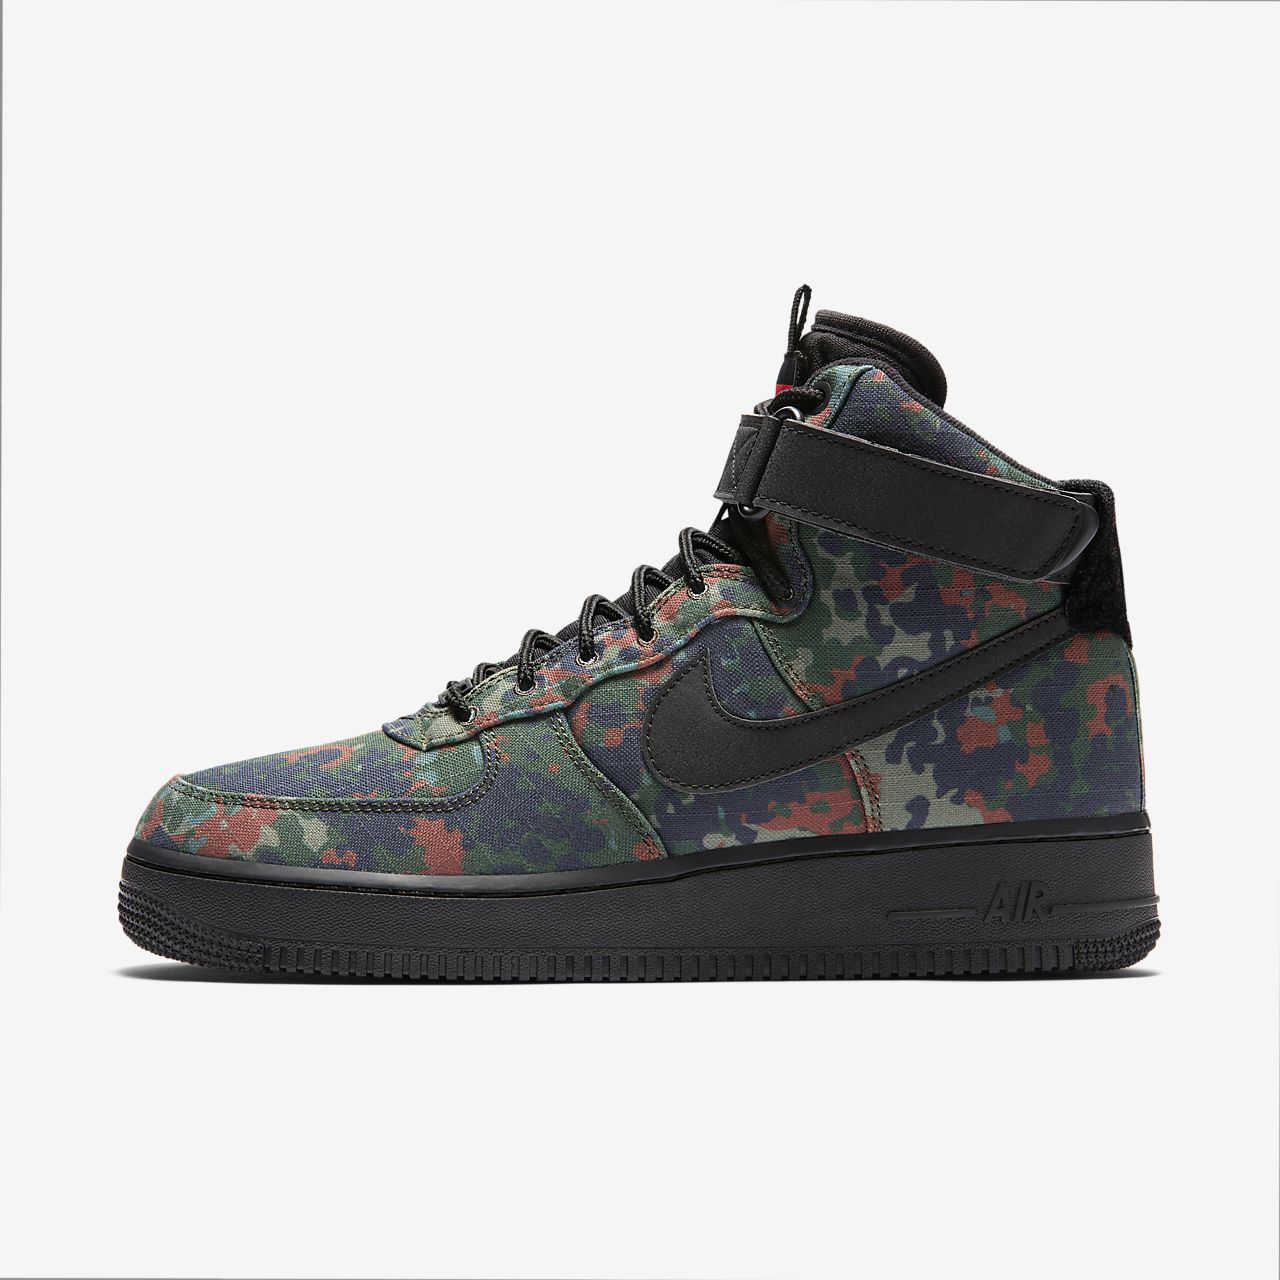 sale retailer 26721 b1a96 ... Calzado para hombre Nike Air Force 1 High 07 LV8